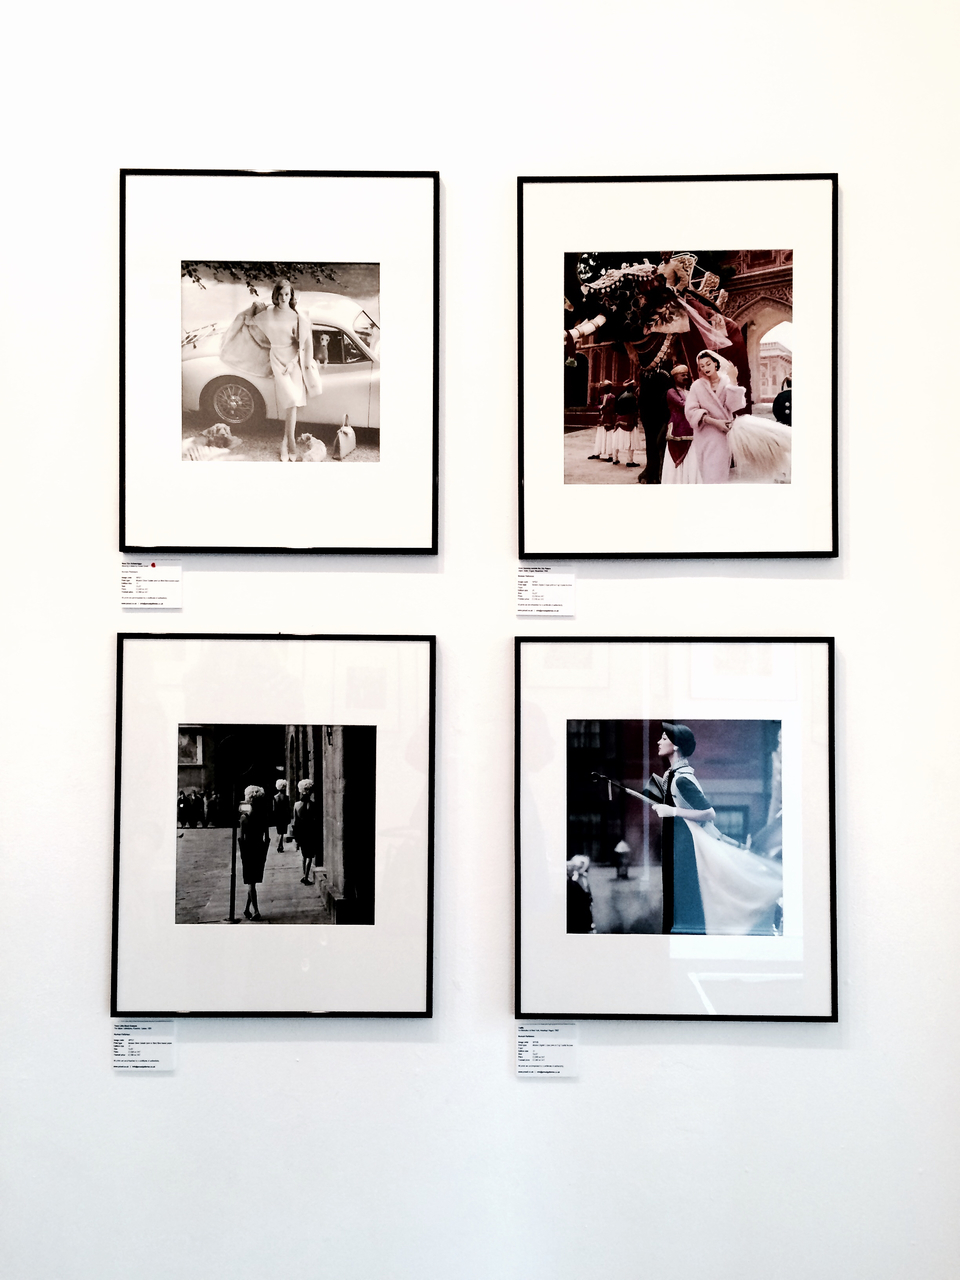 Chelsea X Vogue Exhibition Shared By Laima On We Heart It